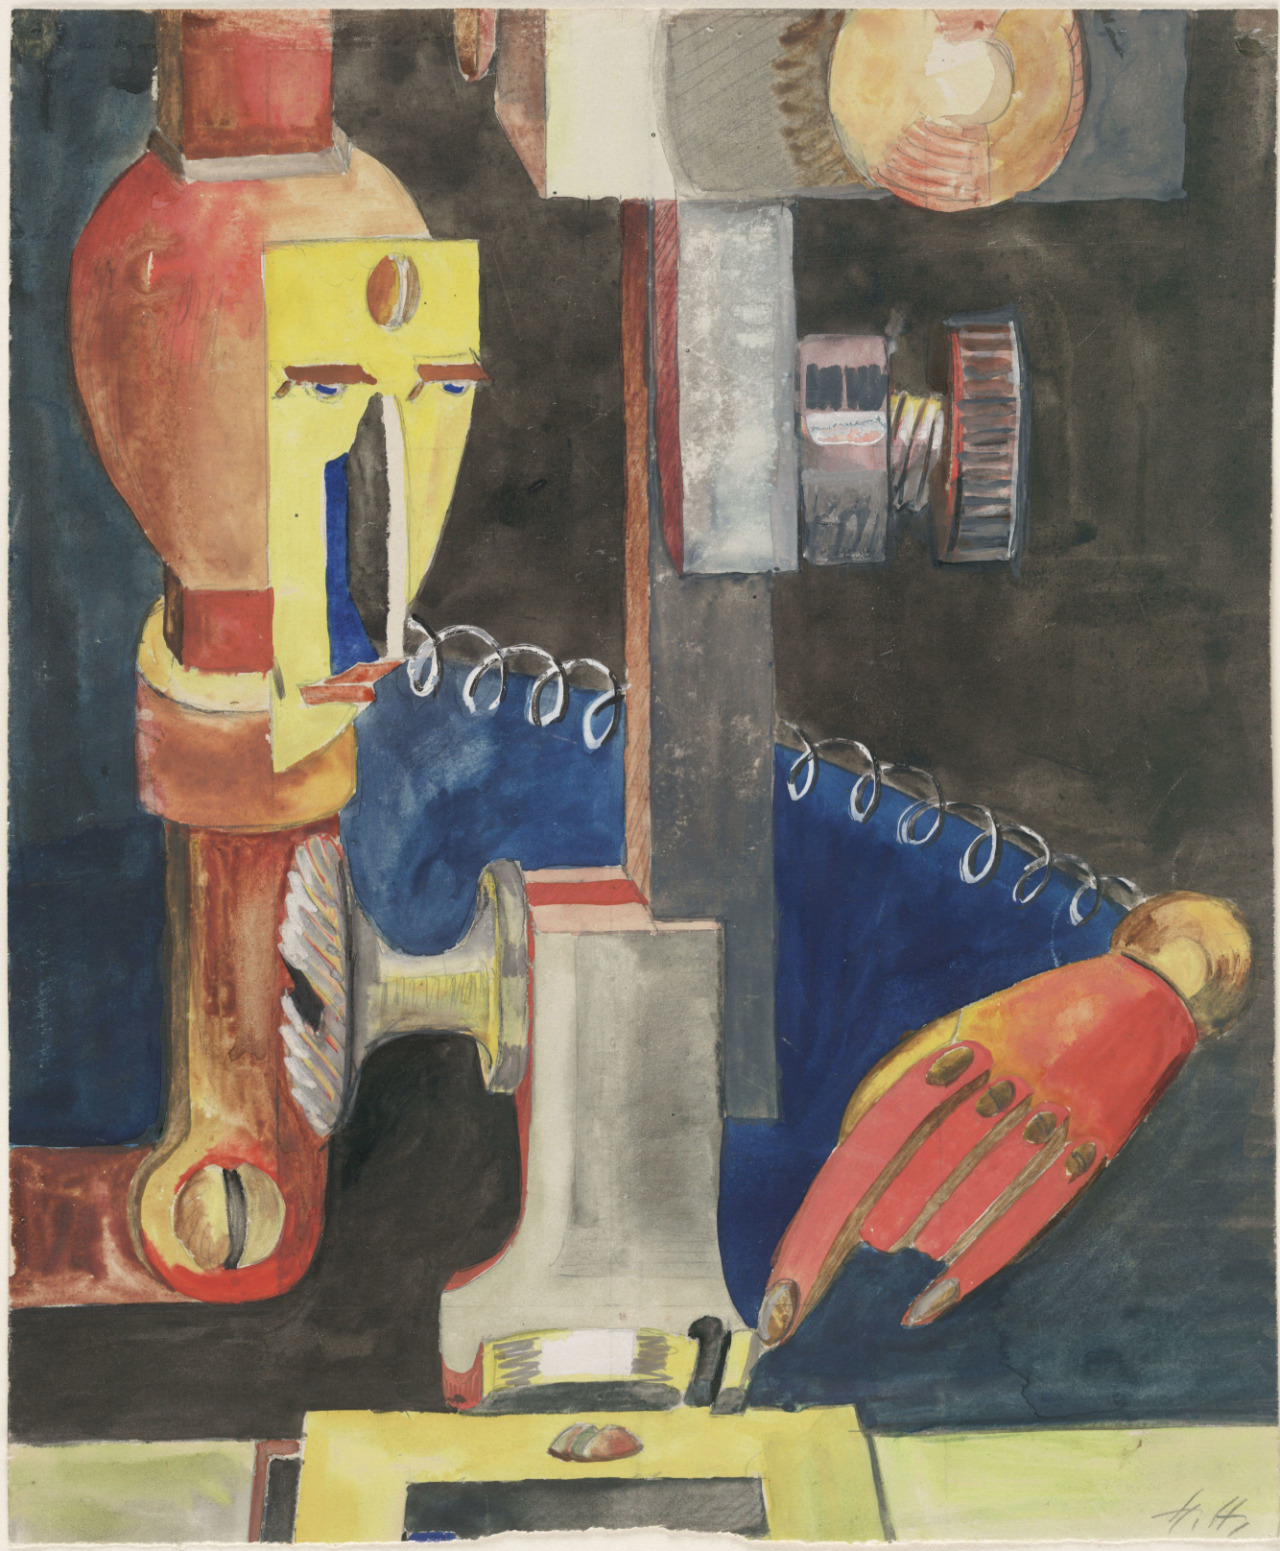 Hannah Höch, Study for Man and Machine, 1921